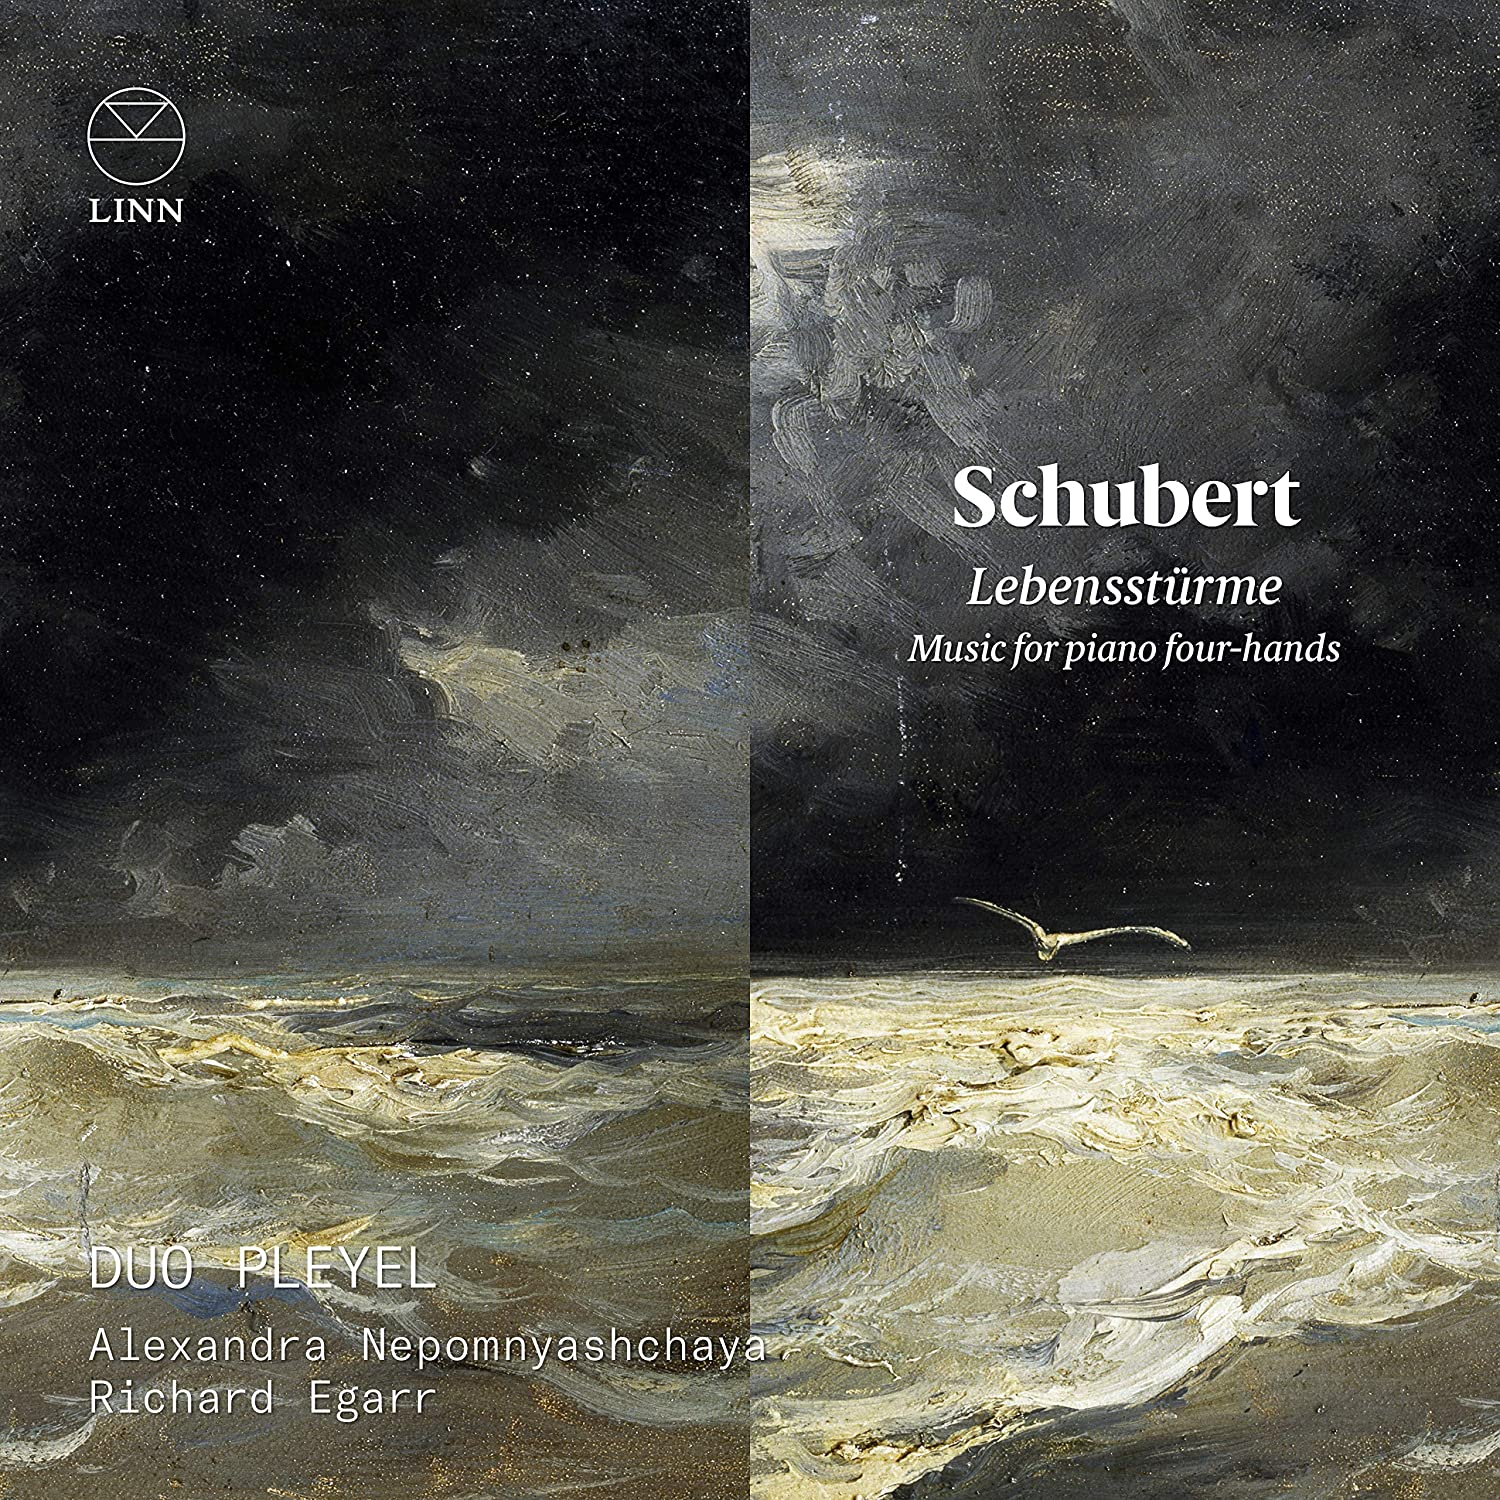 Review of SCHUBERT Lebensstürme. Music for Piano Four-Hands (Duo Pleyel)